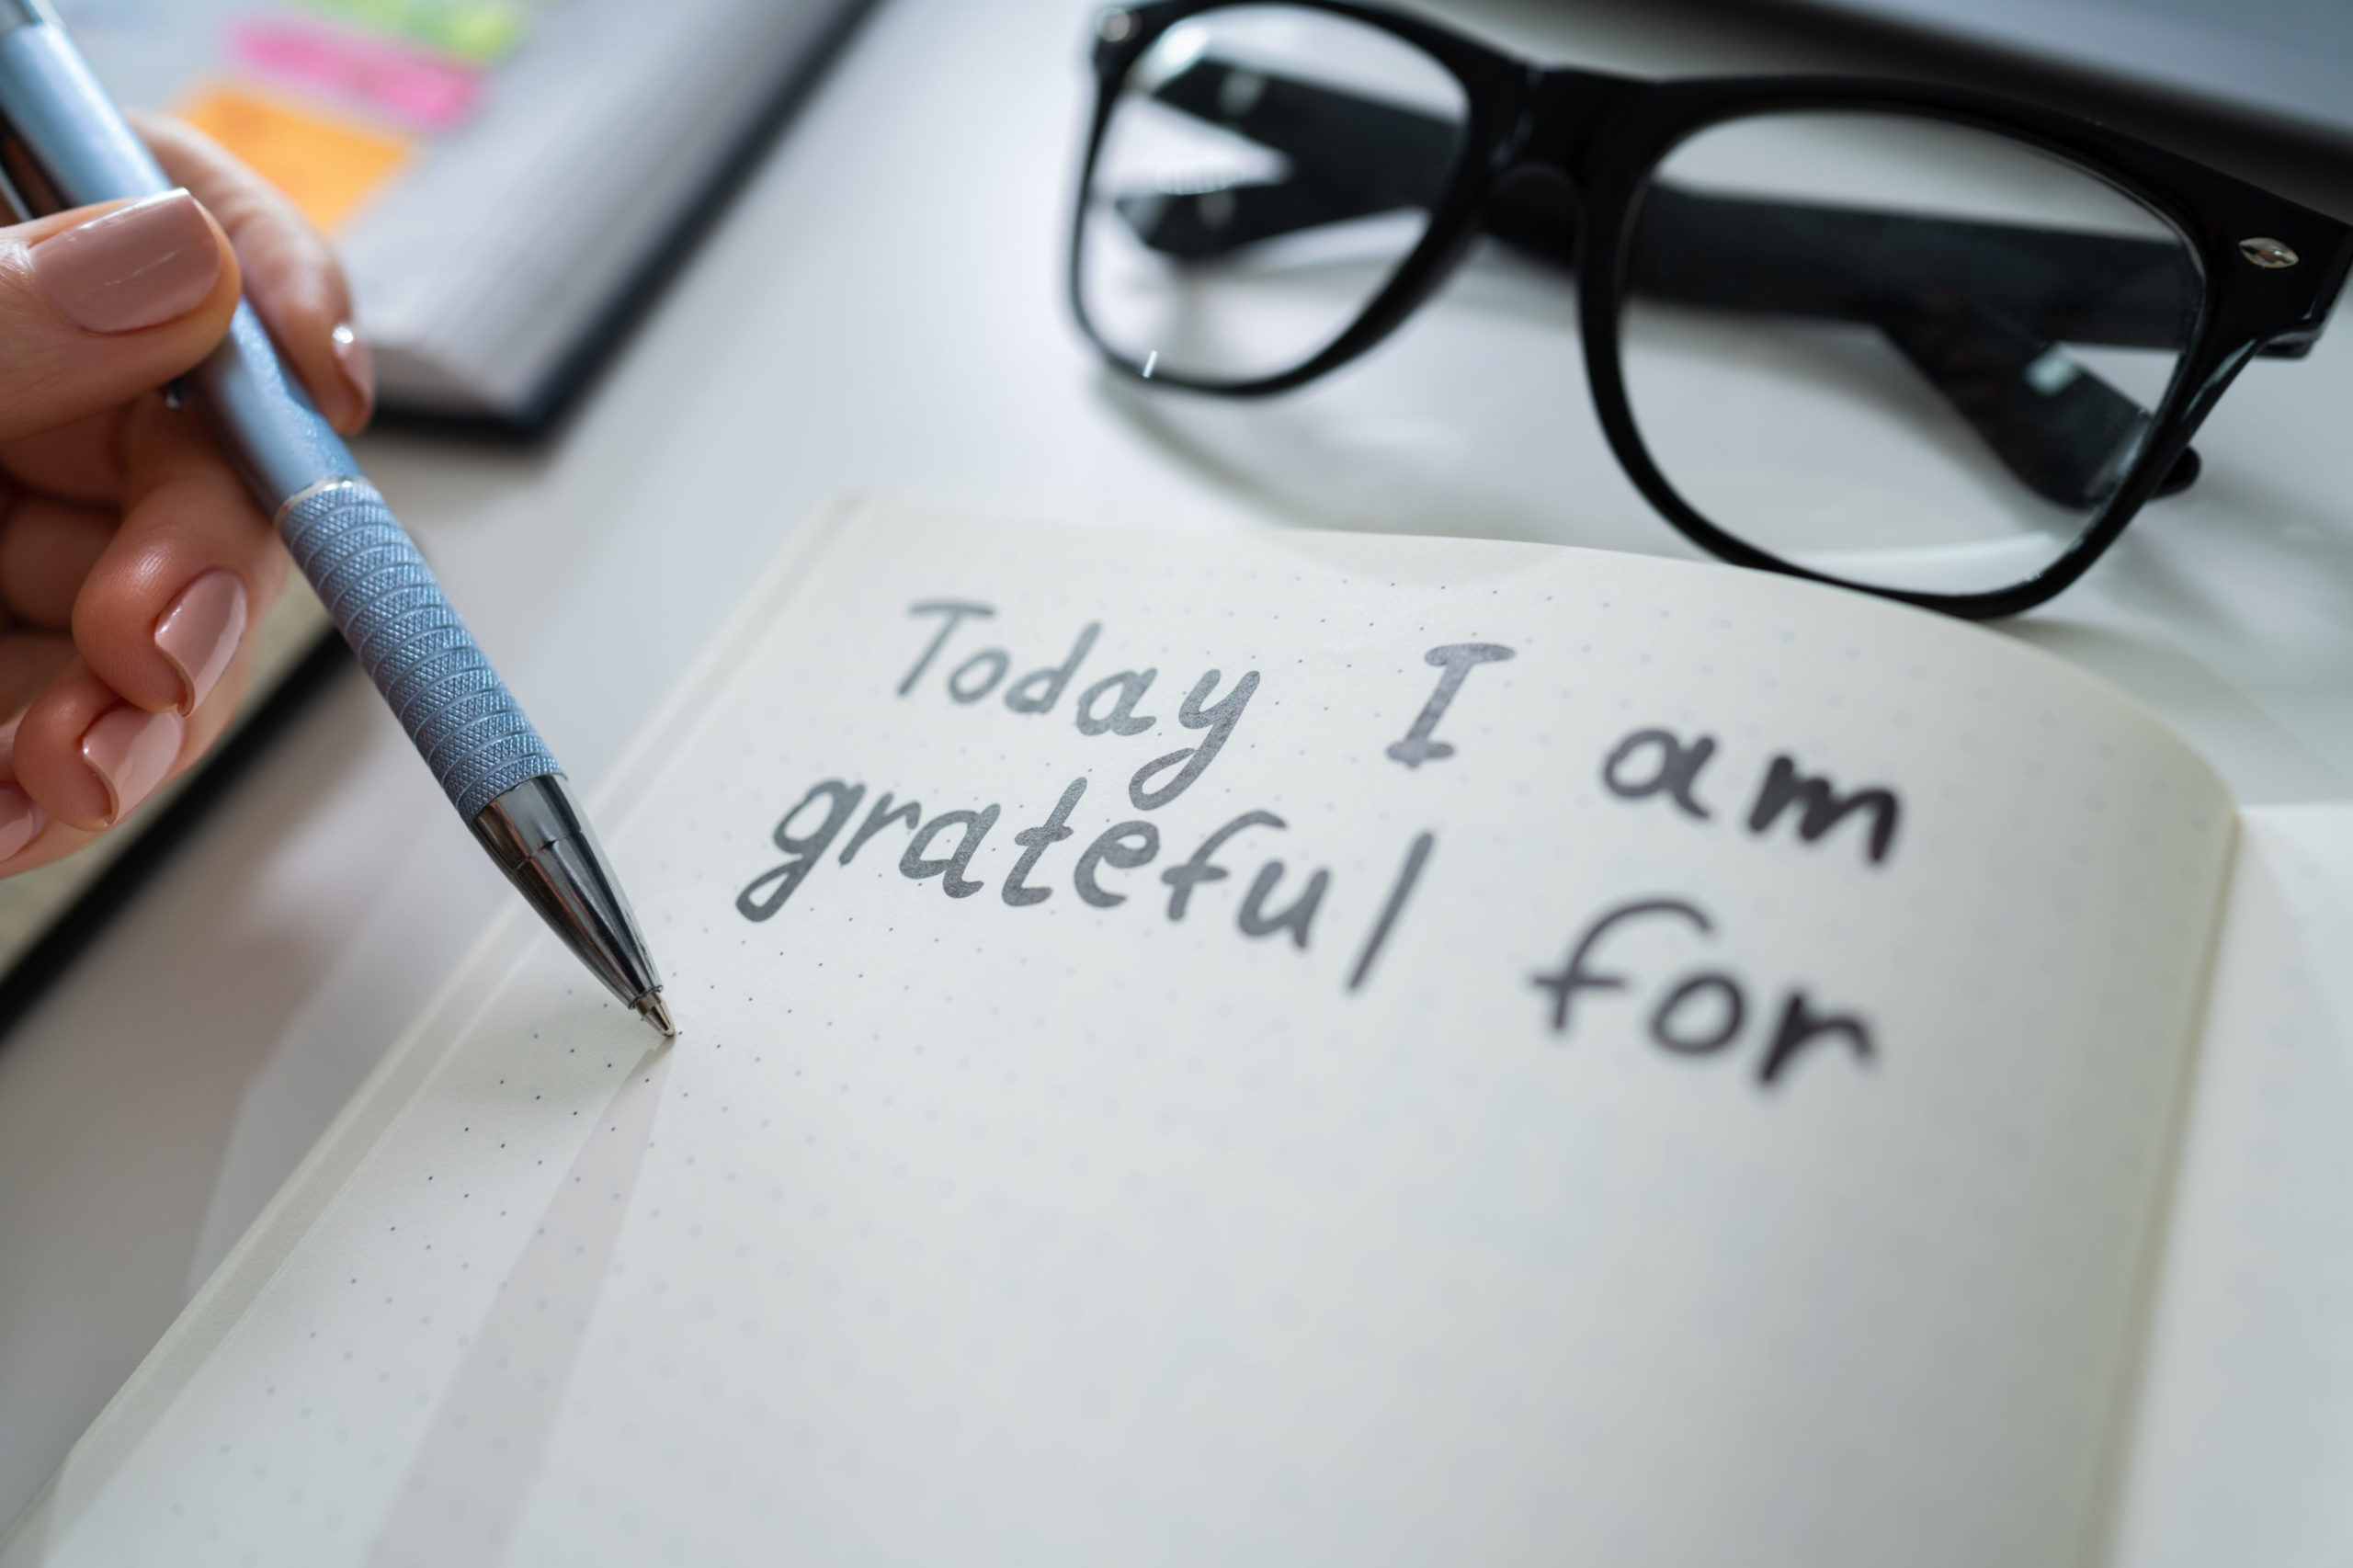 Make the most of the holidays at Summit Pointe with a Gratitude Journal